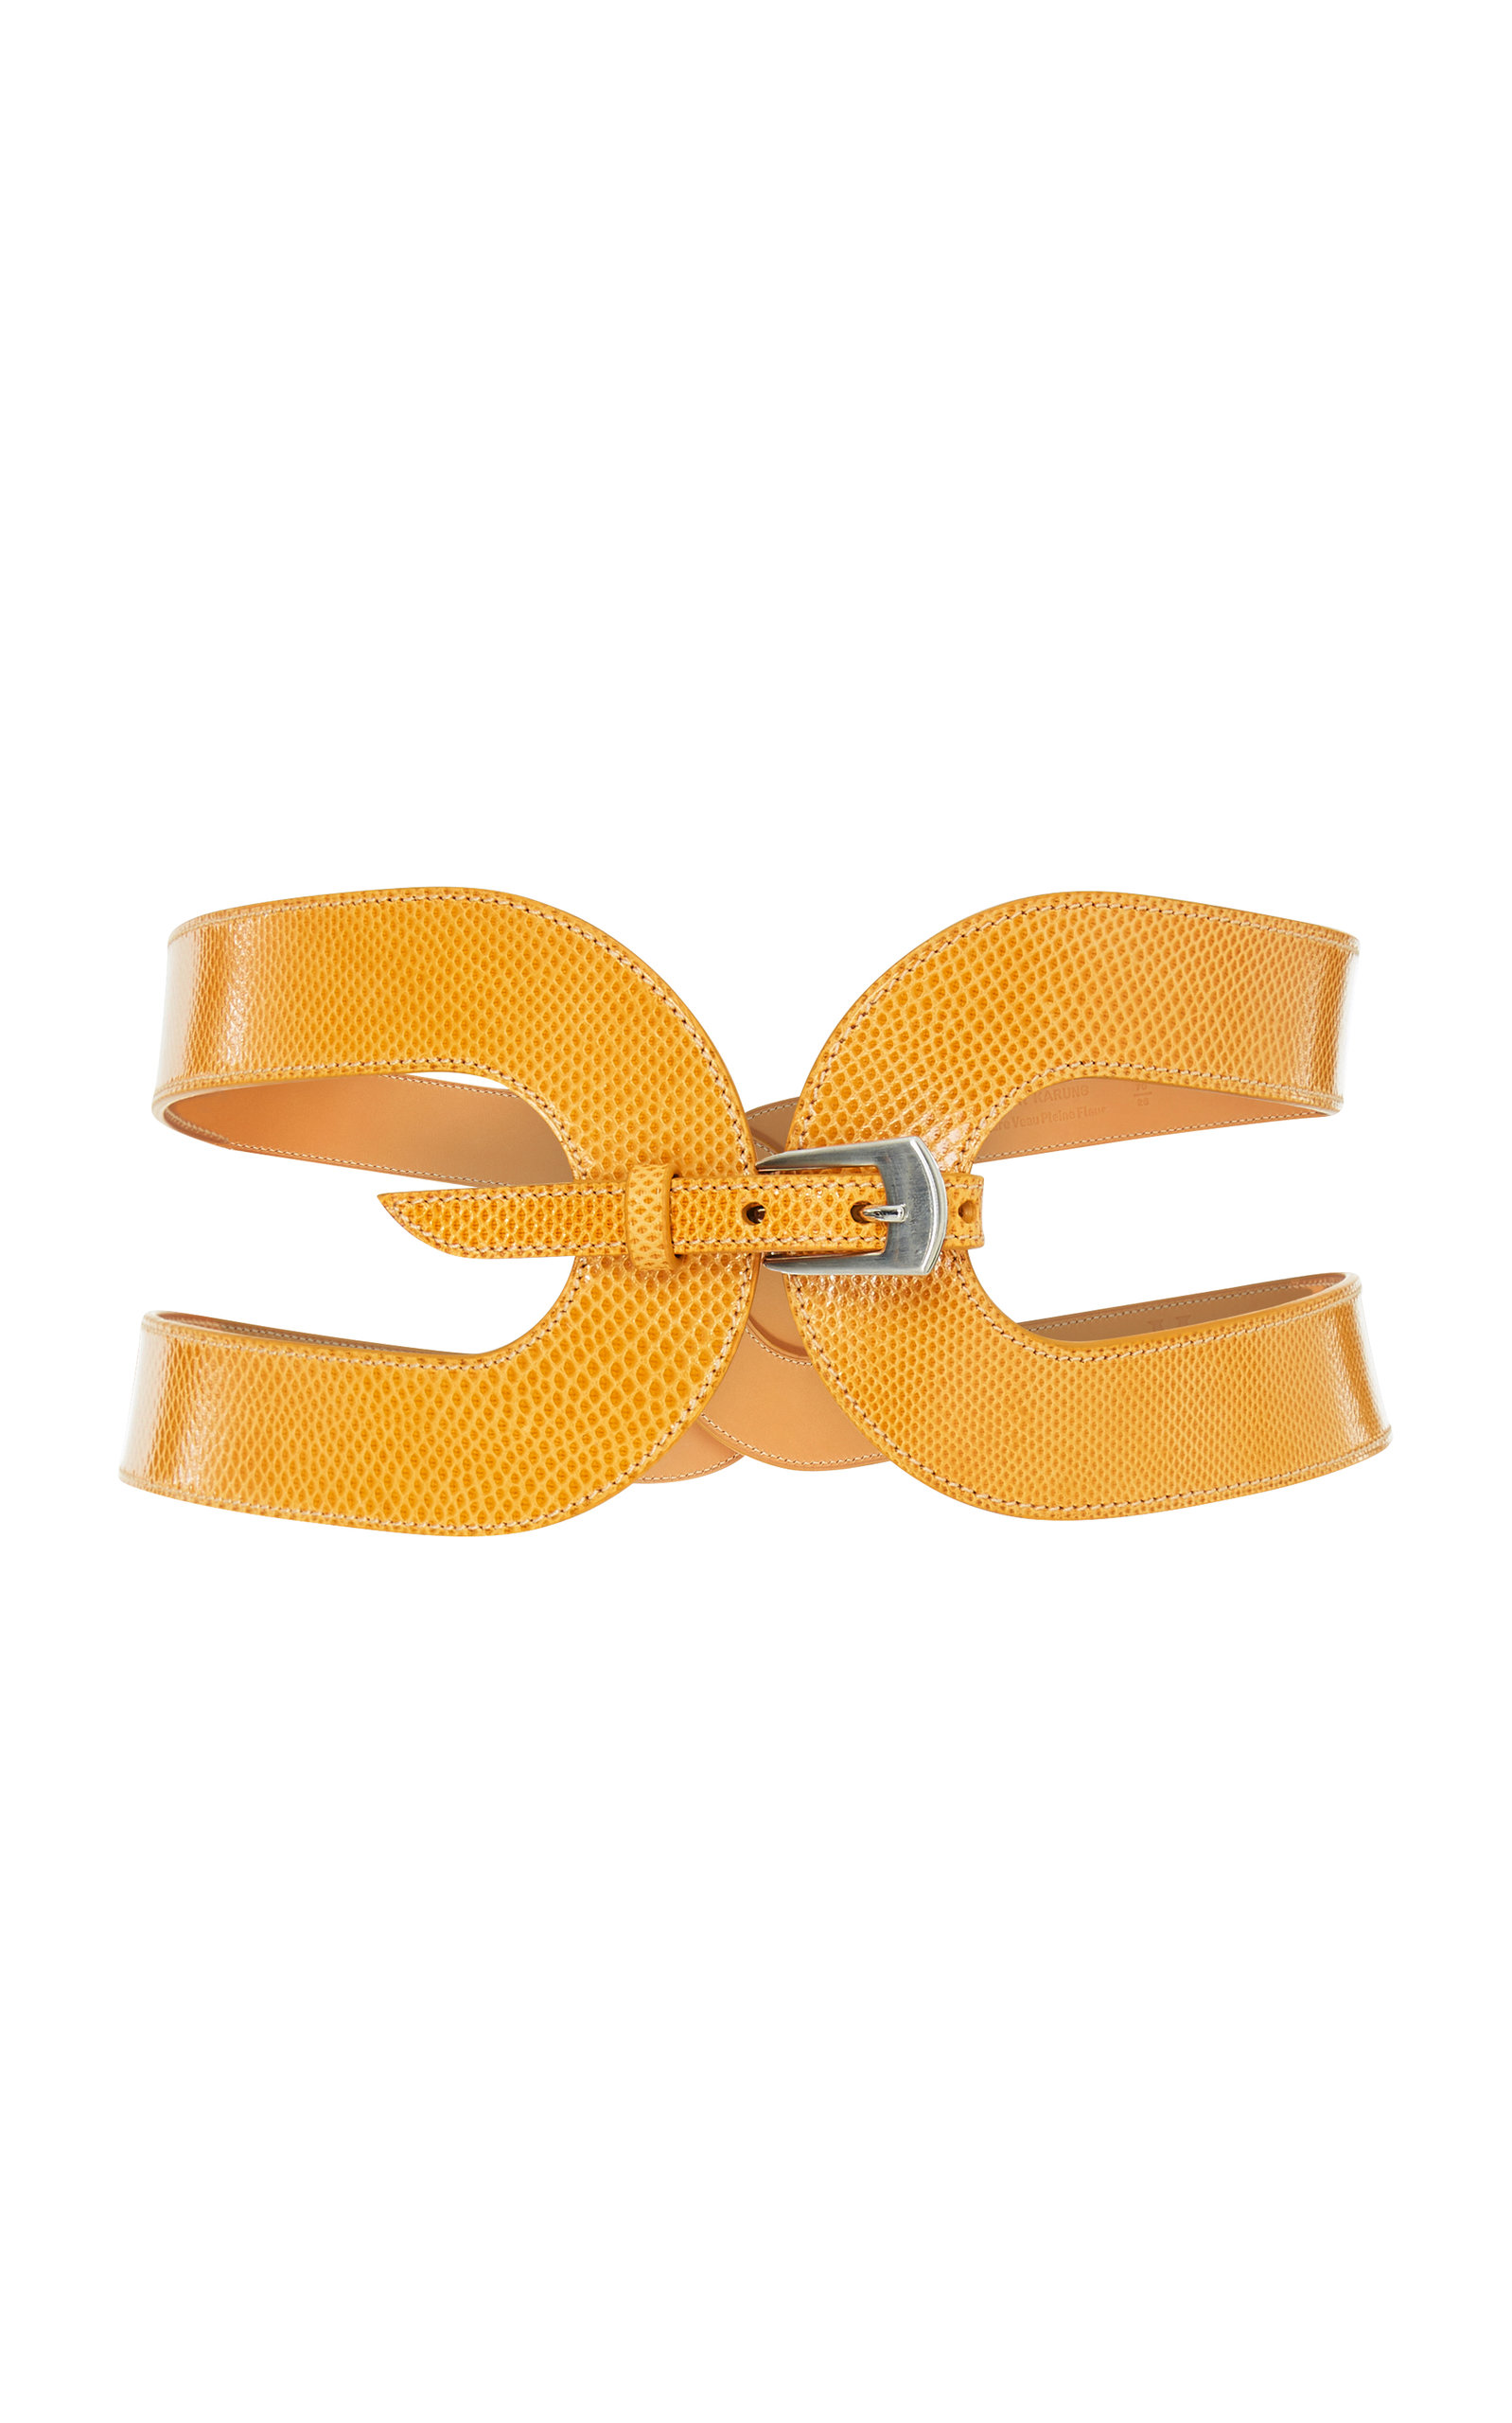 M'O EXCLUSIVE THE CAGE SNAKE SKIN WAIST BELT